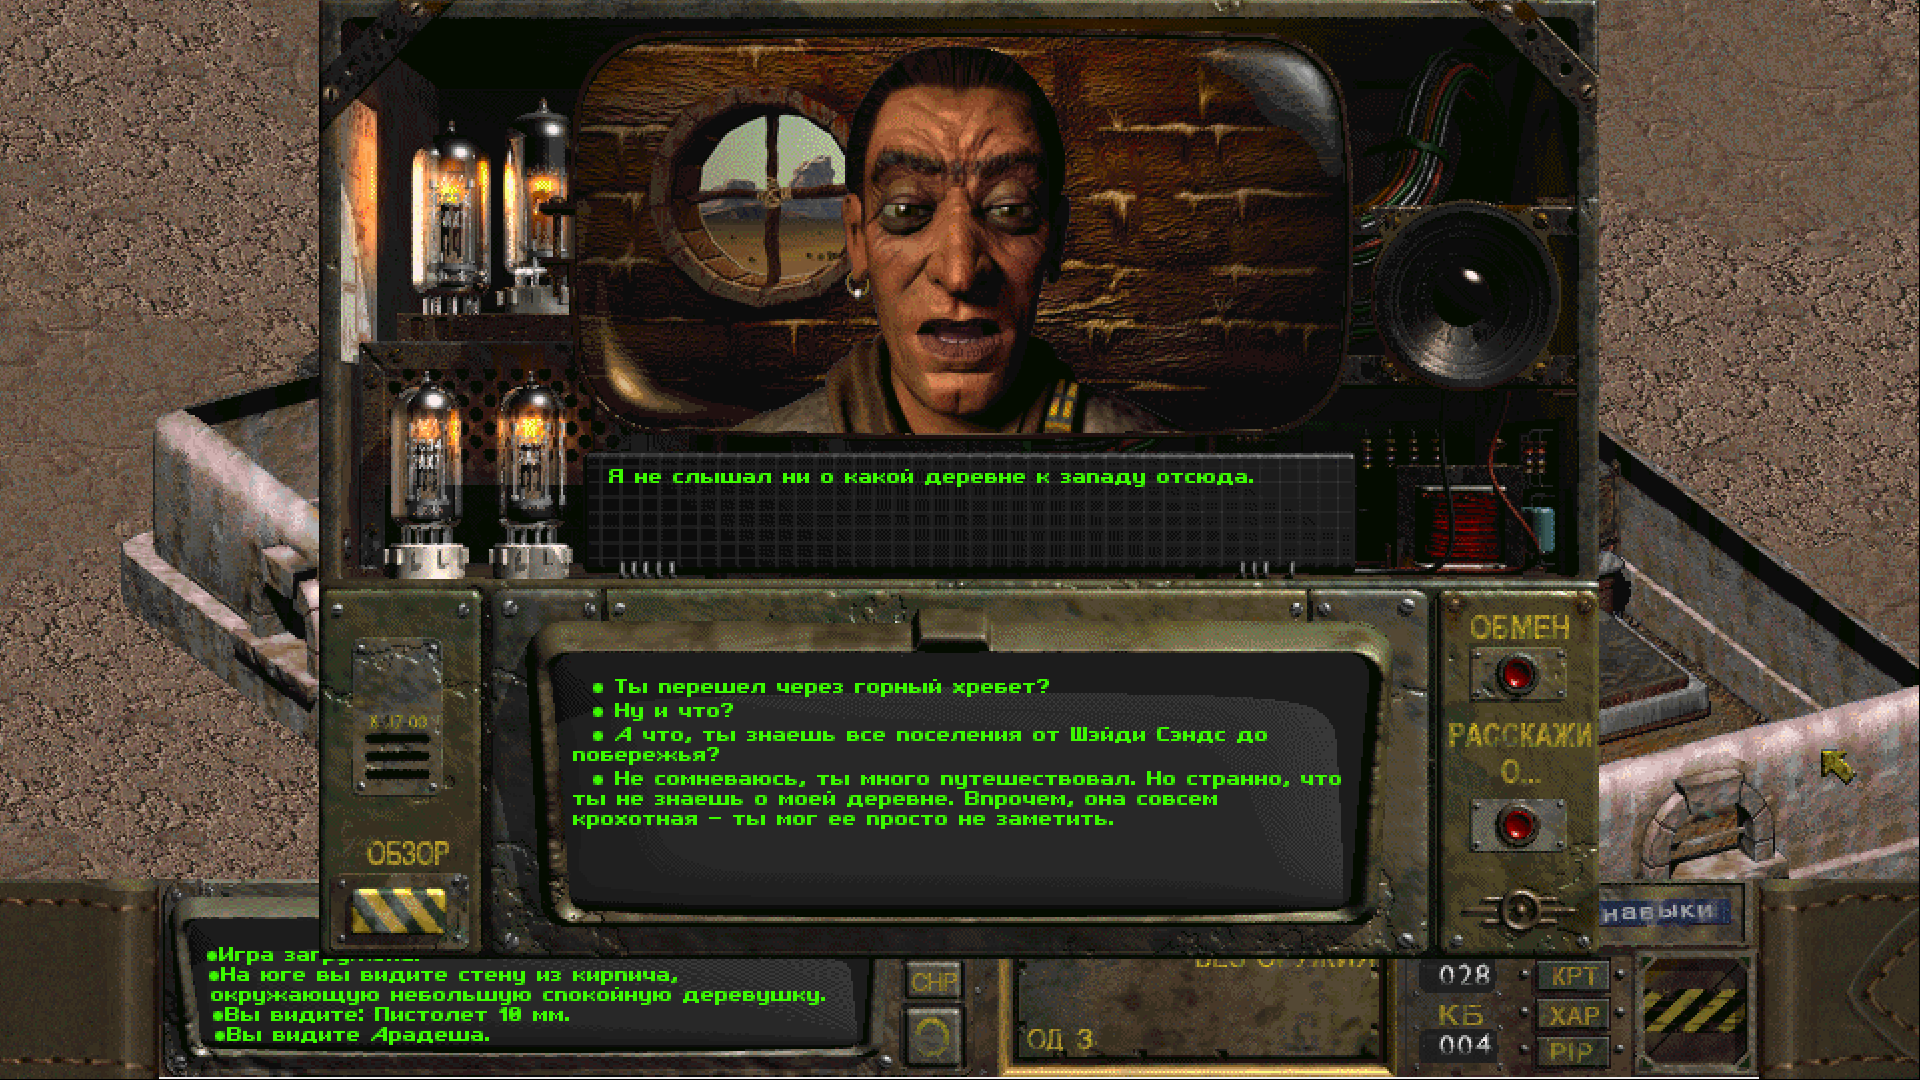 how to get fallout 3 mods on steam